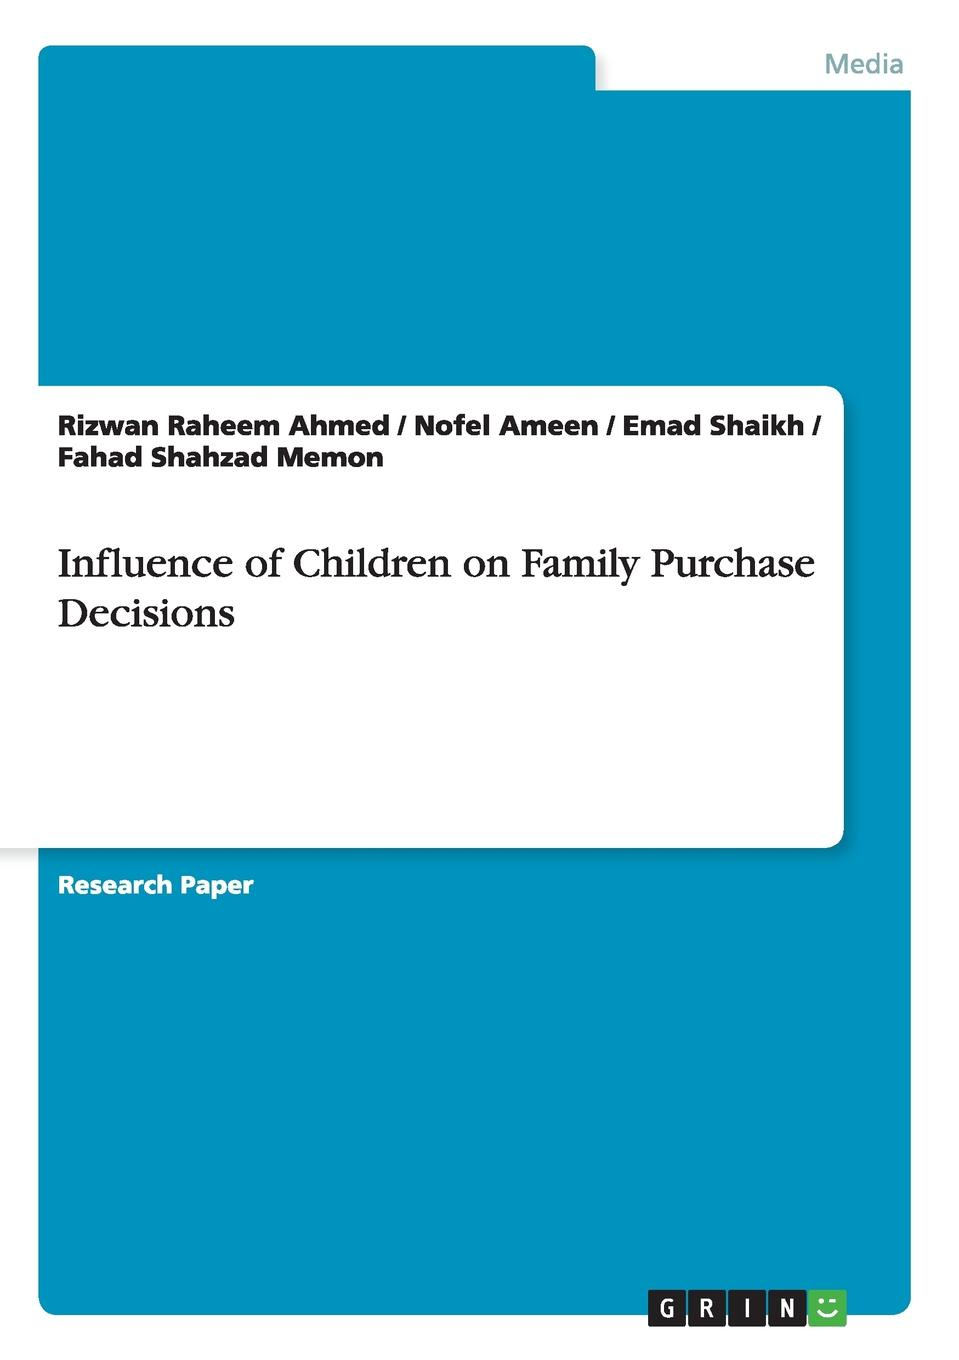 Rizwan Raheem Ahmed, Nofel Ameen, Emad Shaikh Influence of Children on Family Purchase Decisions katharina werner the impact of children and marital status on happiness